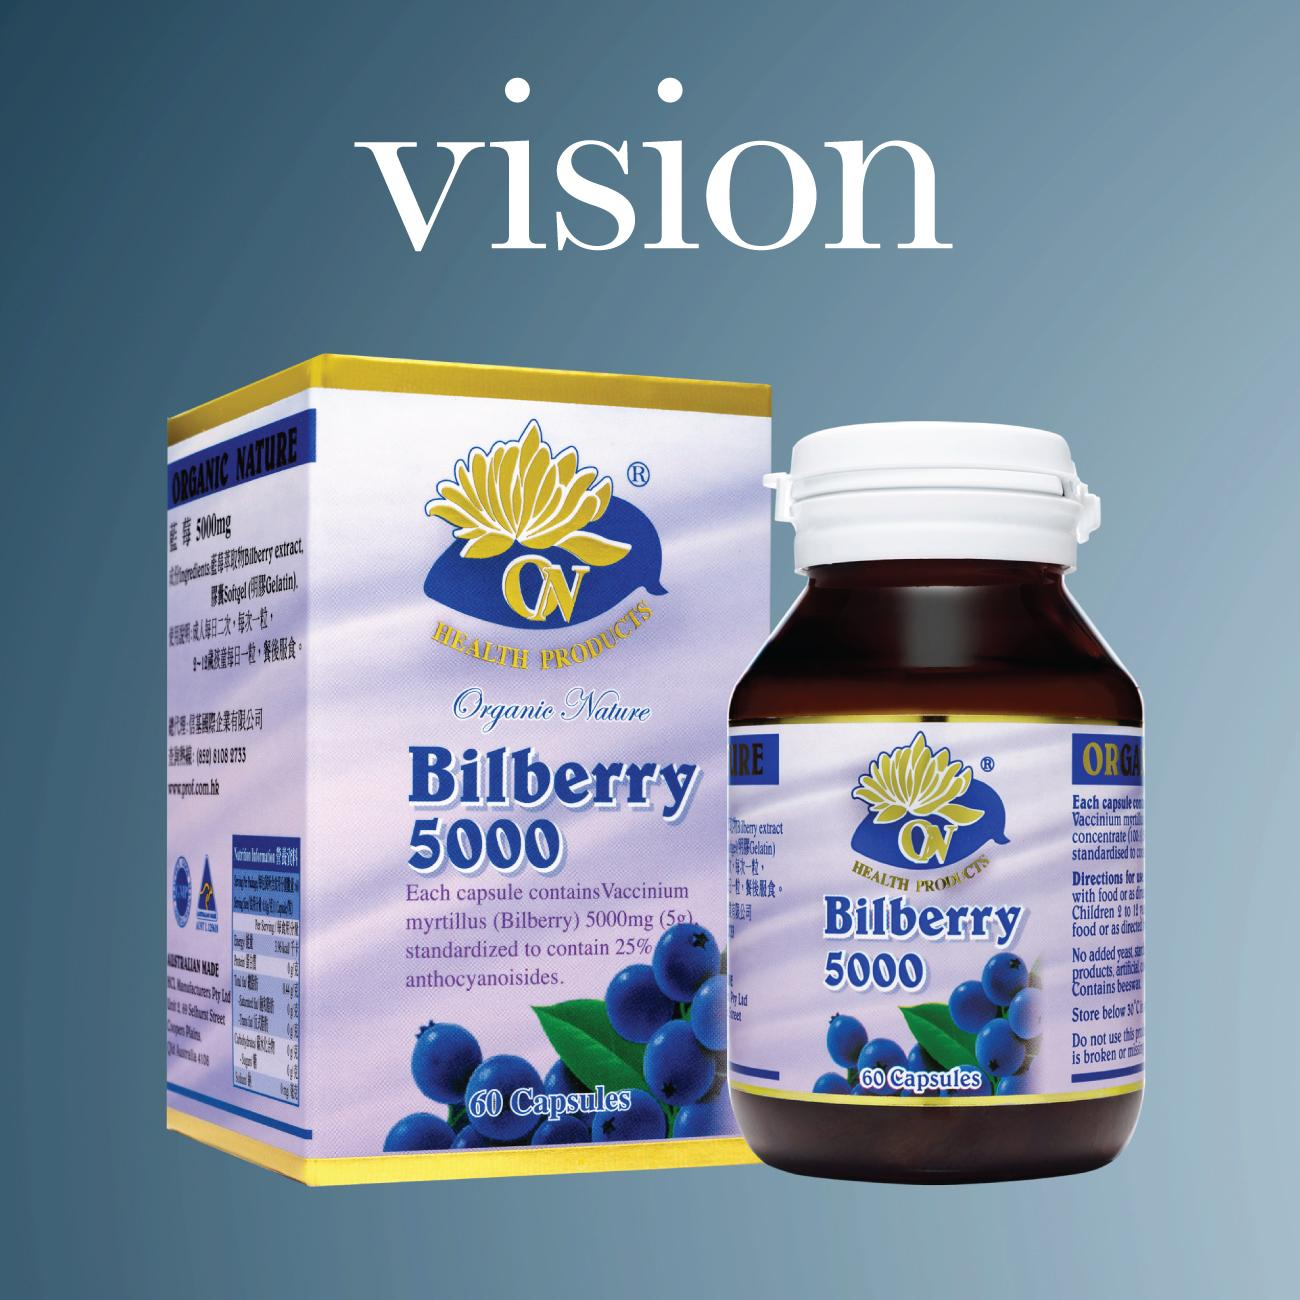 Where Can I Buy Organic Nature Bilberry 5000Mg 60 Capsules